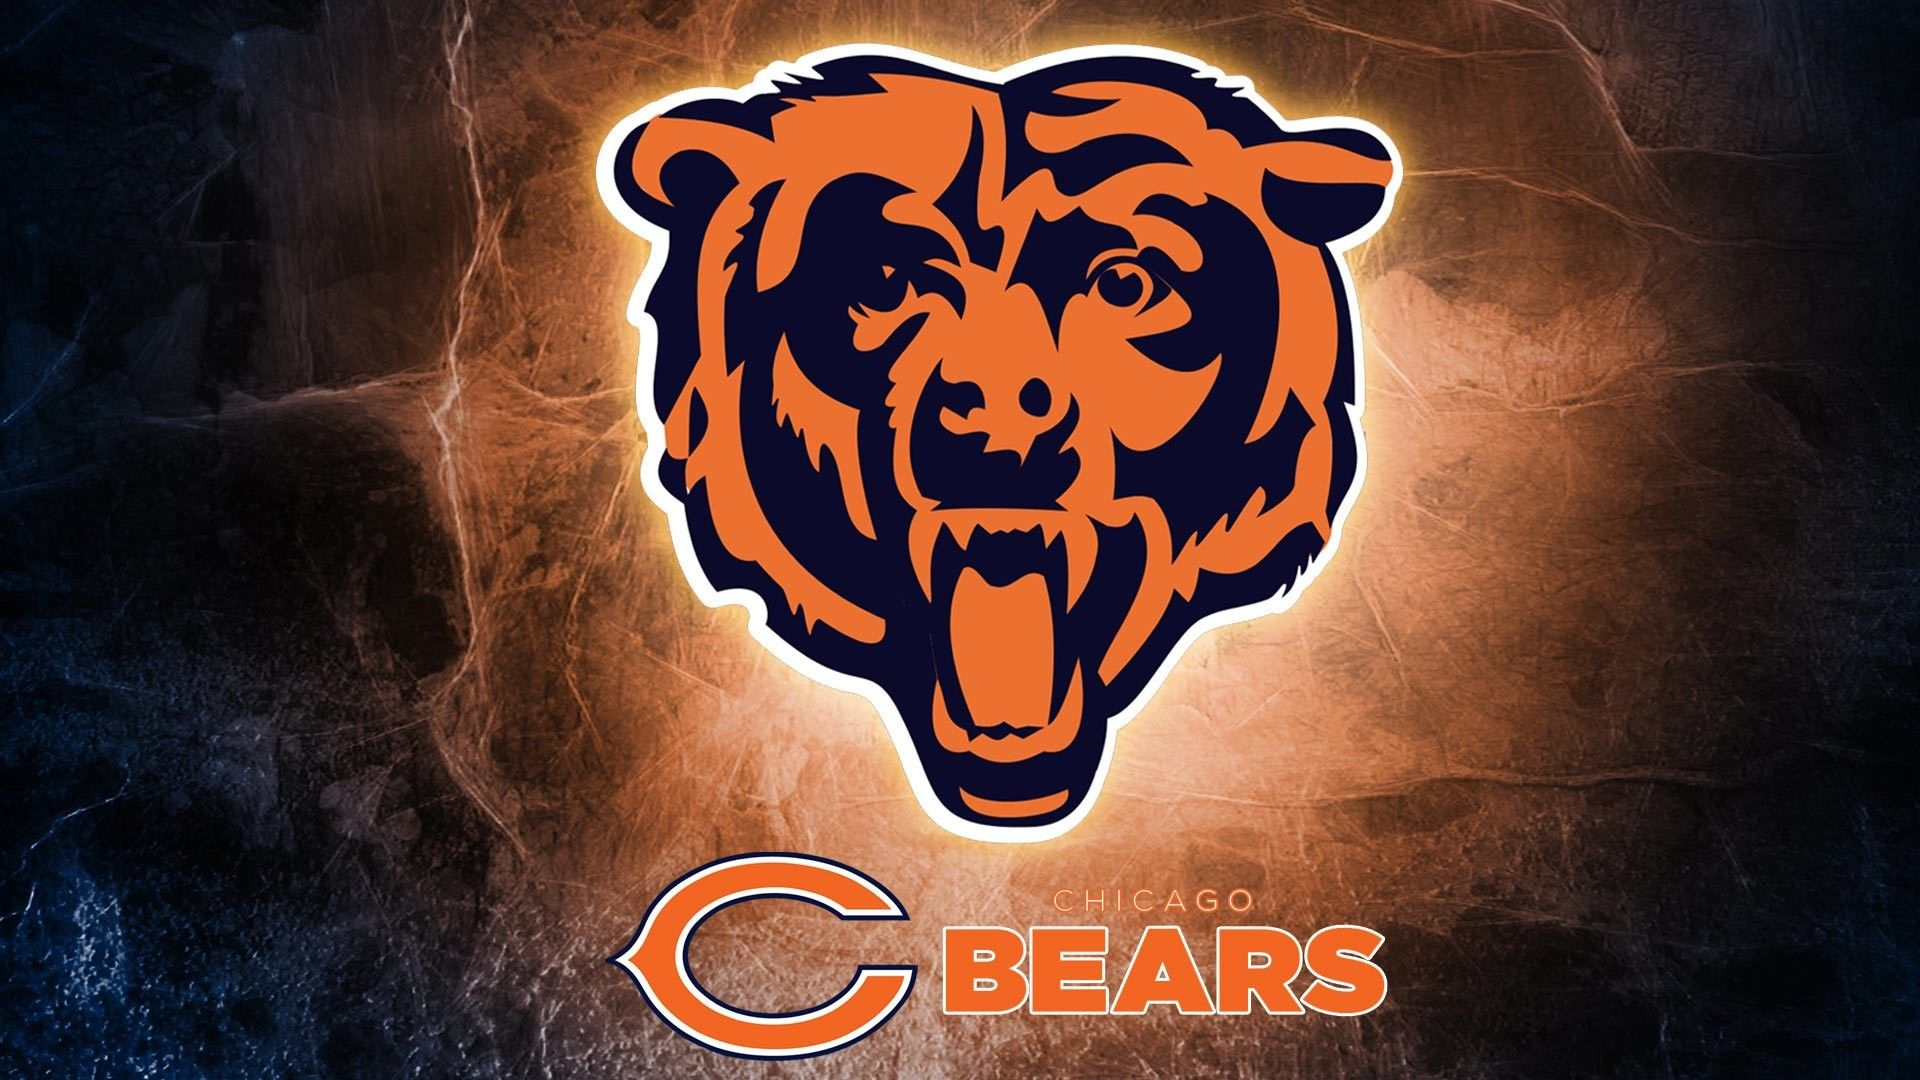 chicago bears 2018 wallpapers - wallpaper cave